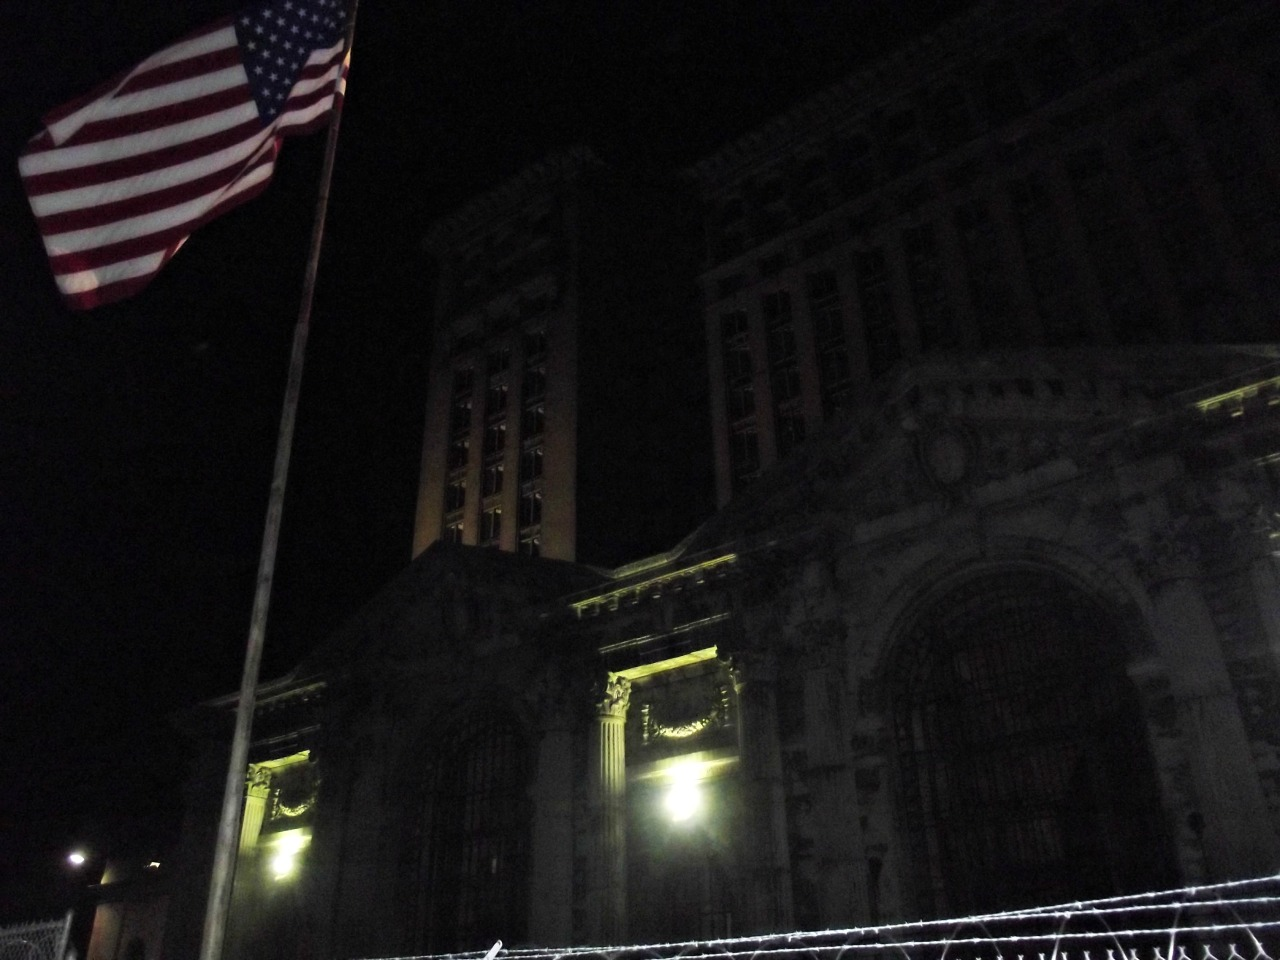 i went to down town Detroit around 2 am and took pictures, its sad how things can change it breaks my heart how Detroit went so down hill, i hope i see it get better… i swear it was a beautiful place, well that's what i herd.